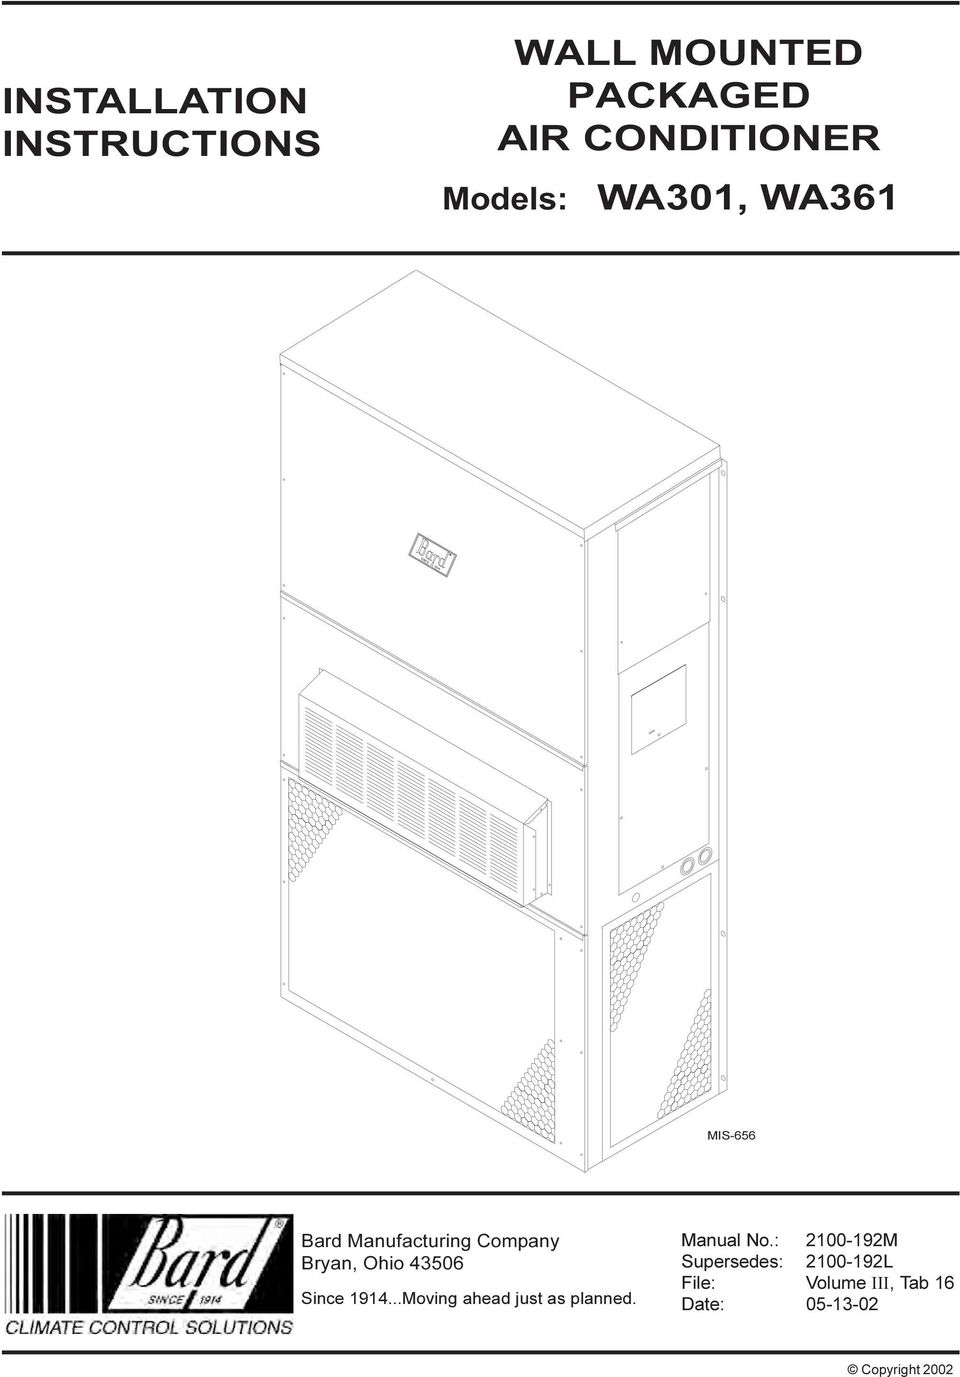 Wall Mounted Packaged Air Conditioner Installation Instructions Bard Wiring Diagrams 43506 Since 94moving Ahead Just As Planned Manual No